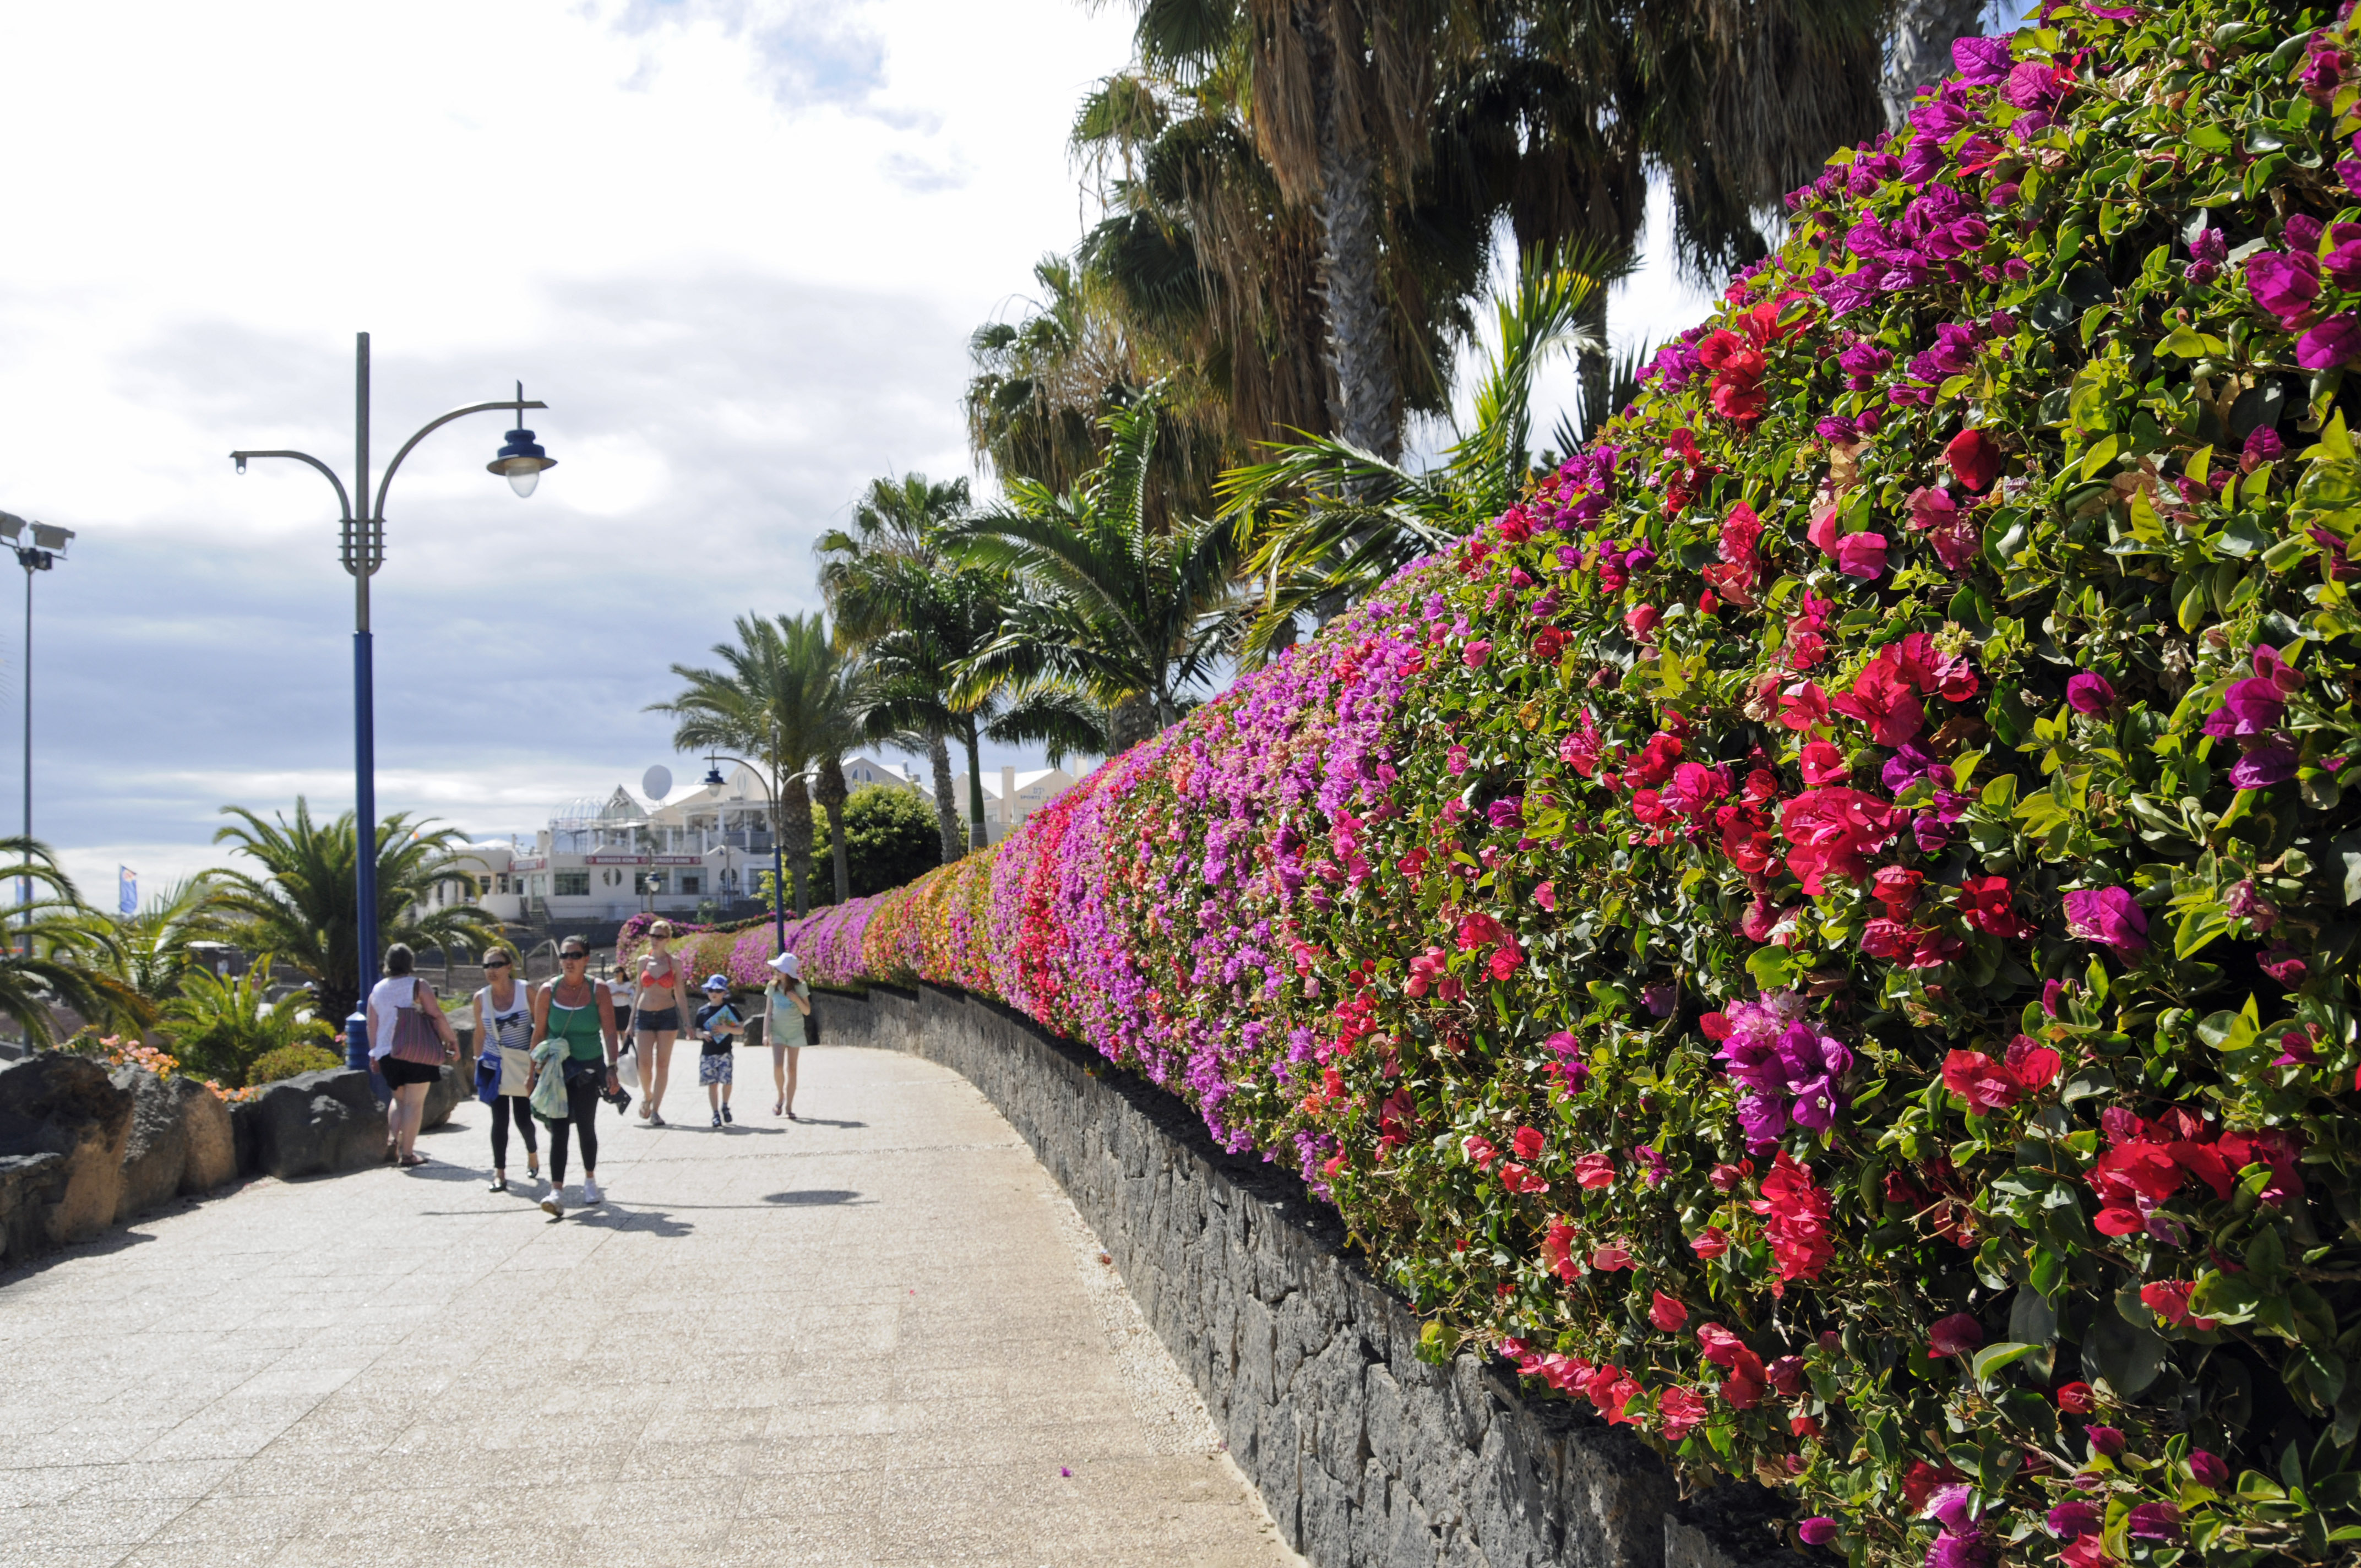 Flowers blossom in Lanzarote